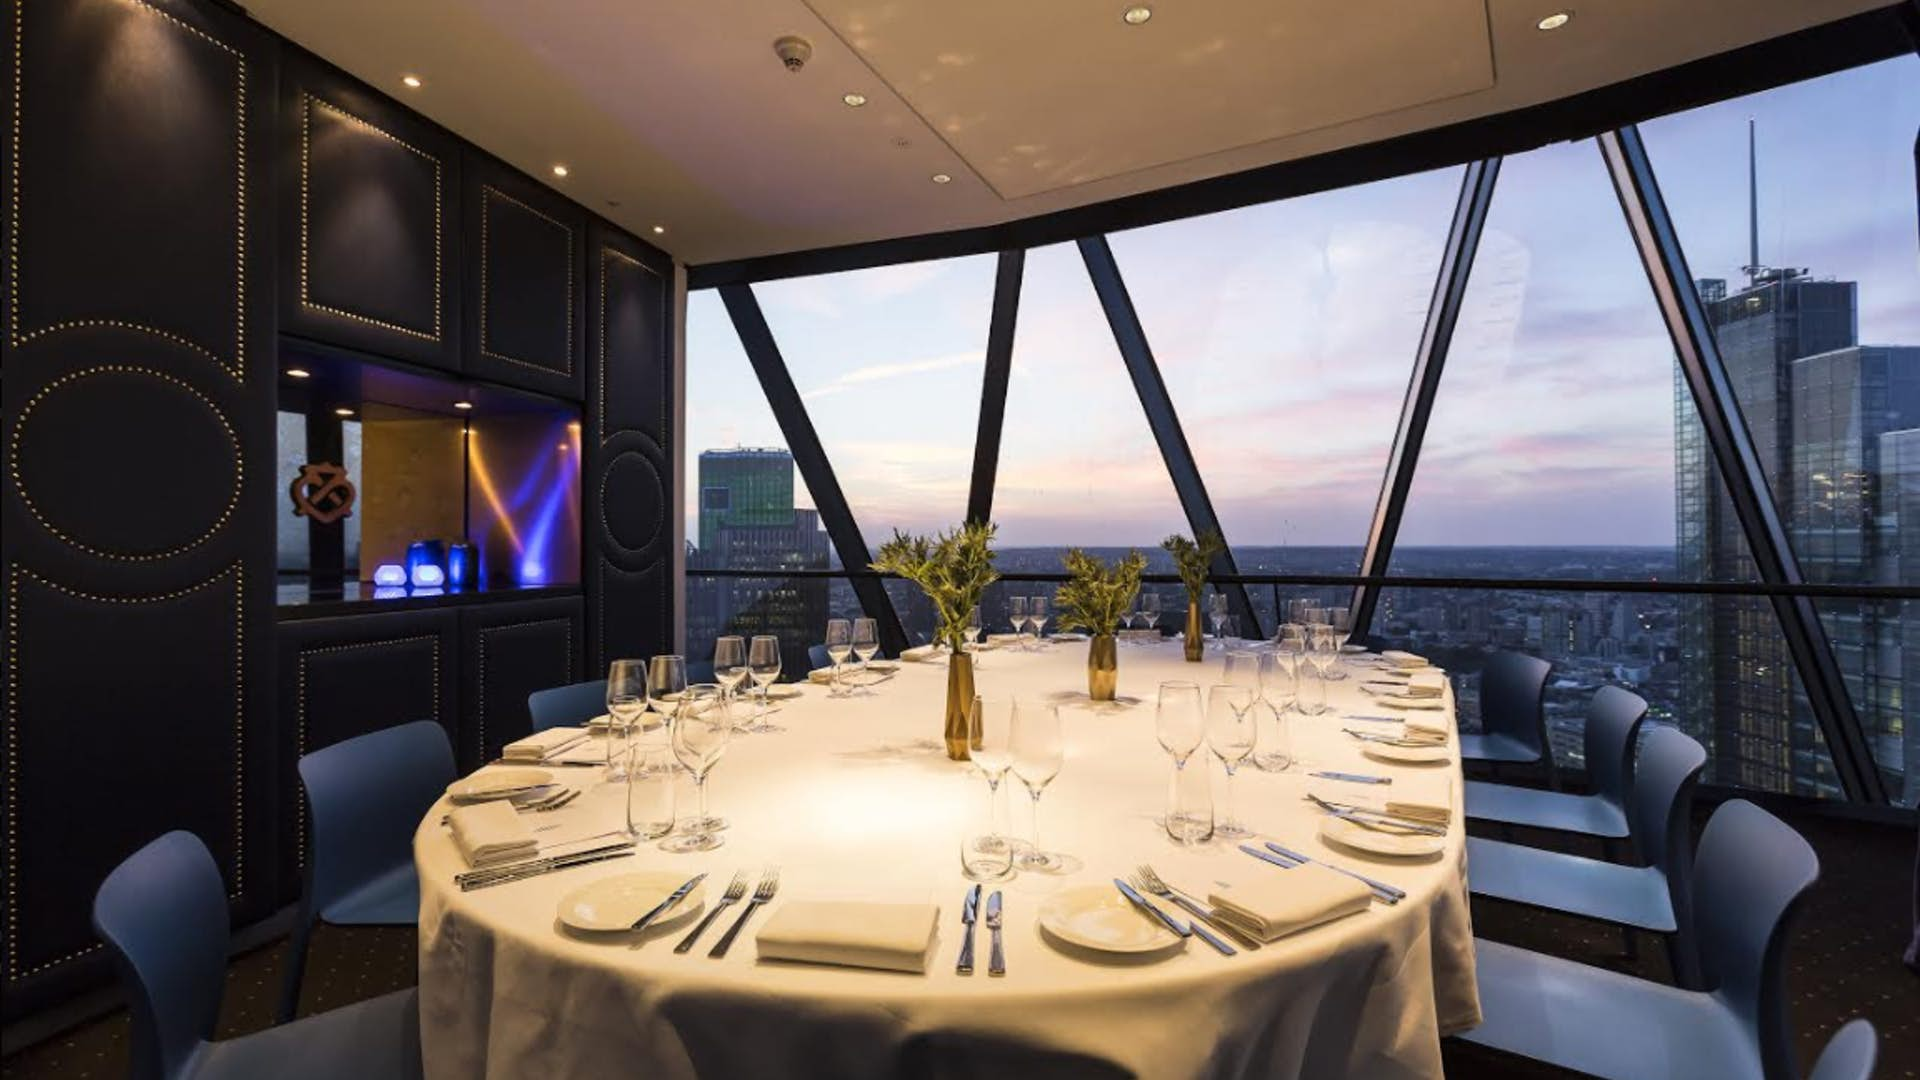 Chivas Dining Room At Searcys The Gherkin